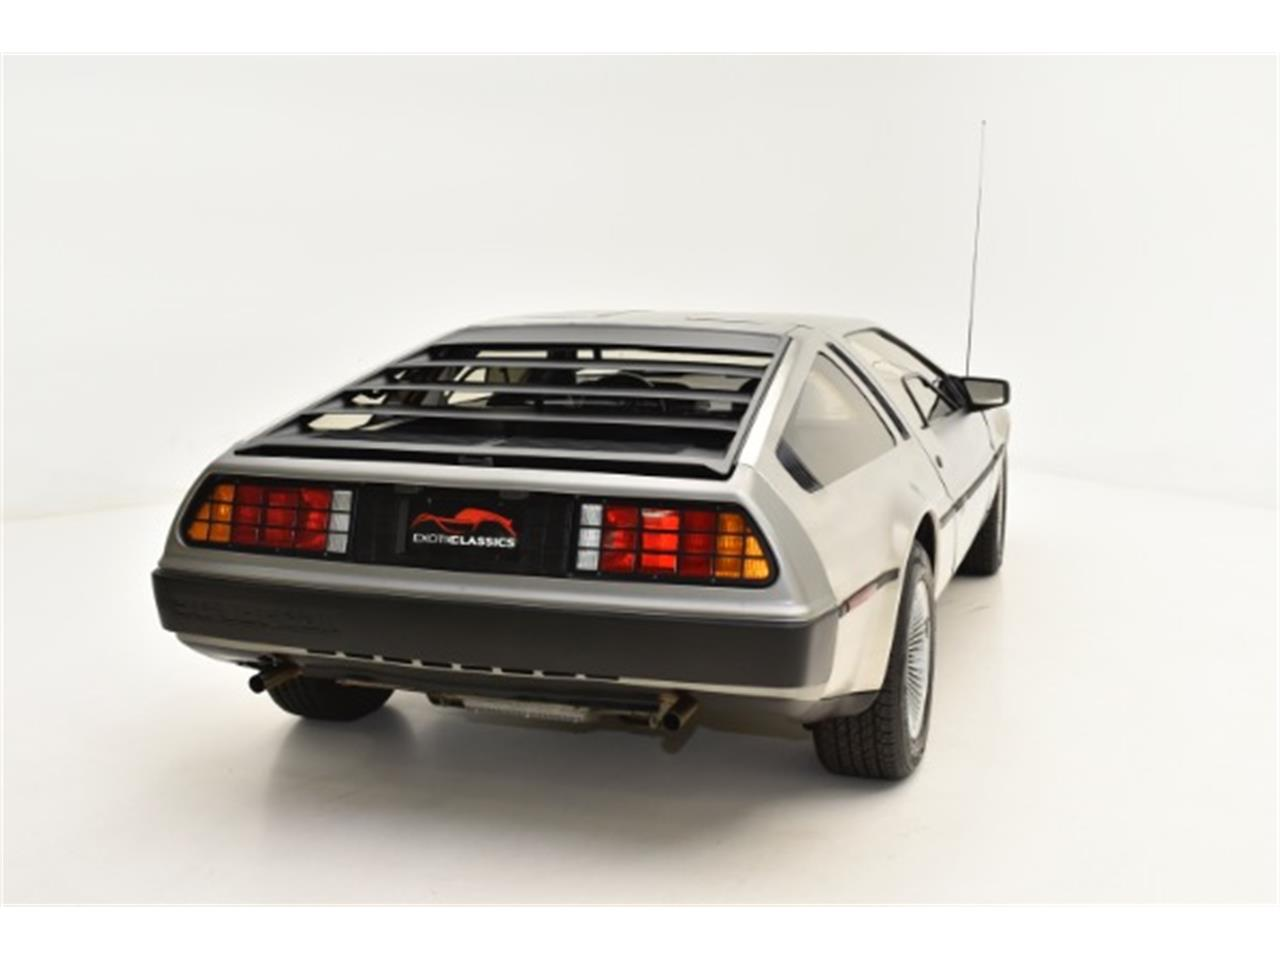 Large Picture of '81 DeLorean DMC-12 located in Syosset New York - L5D0